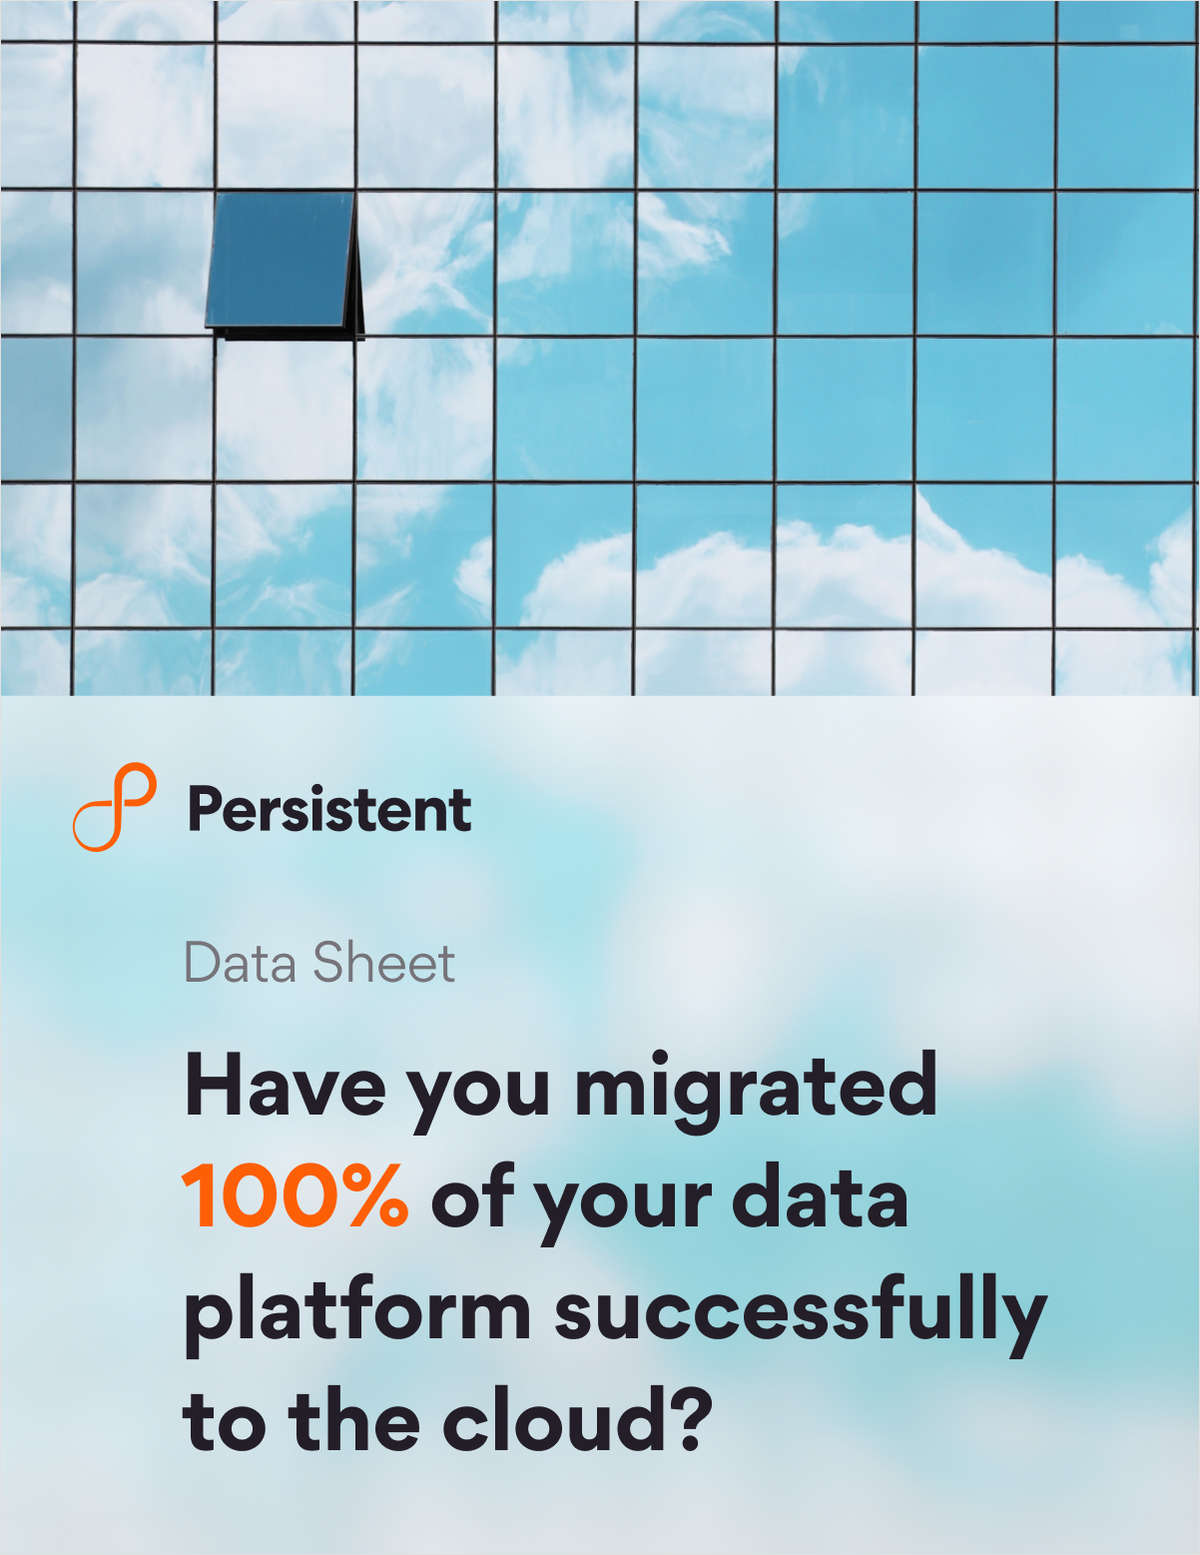 Migrate 100% of your data platform to the cloud successfully